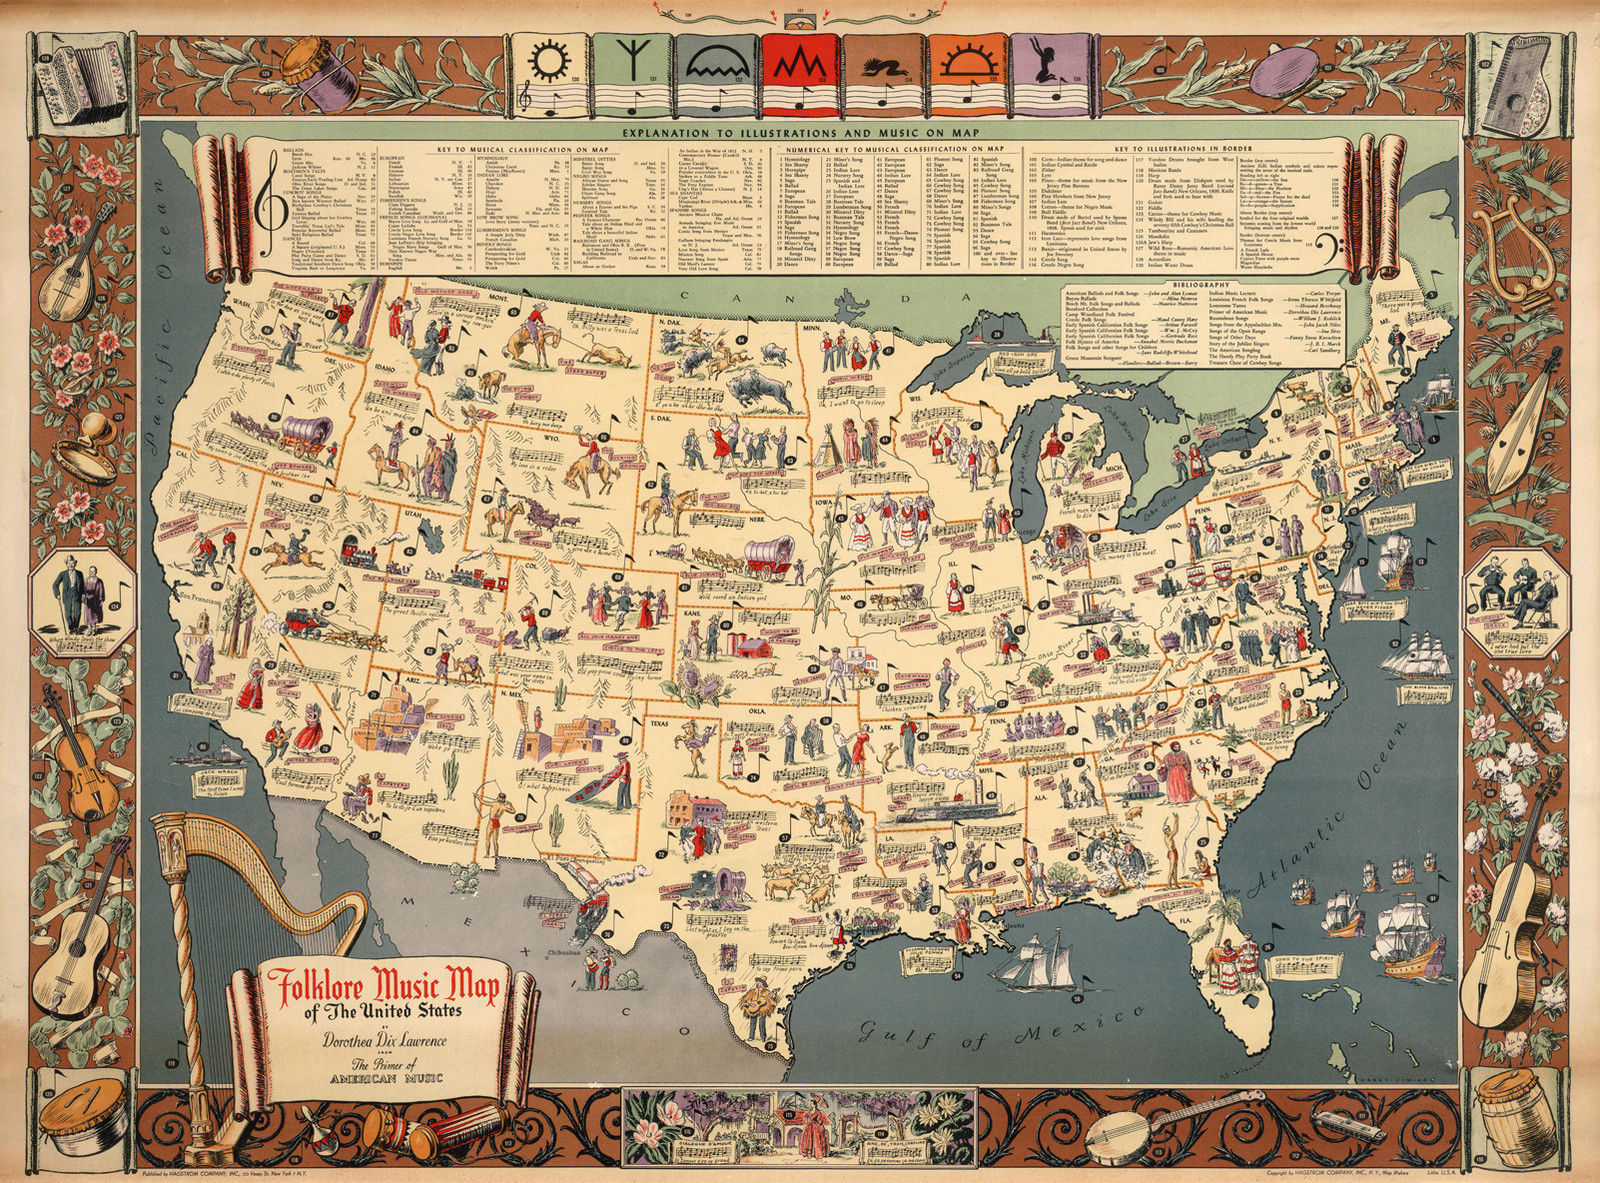 Primary image for 1931 Folklore Music Map of the United States Wall Art Poster Decor History Print